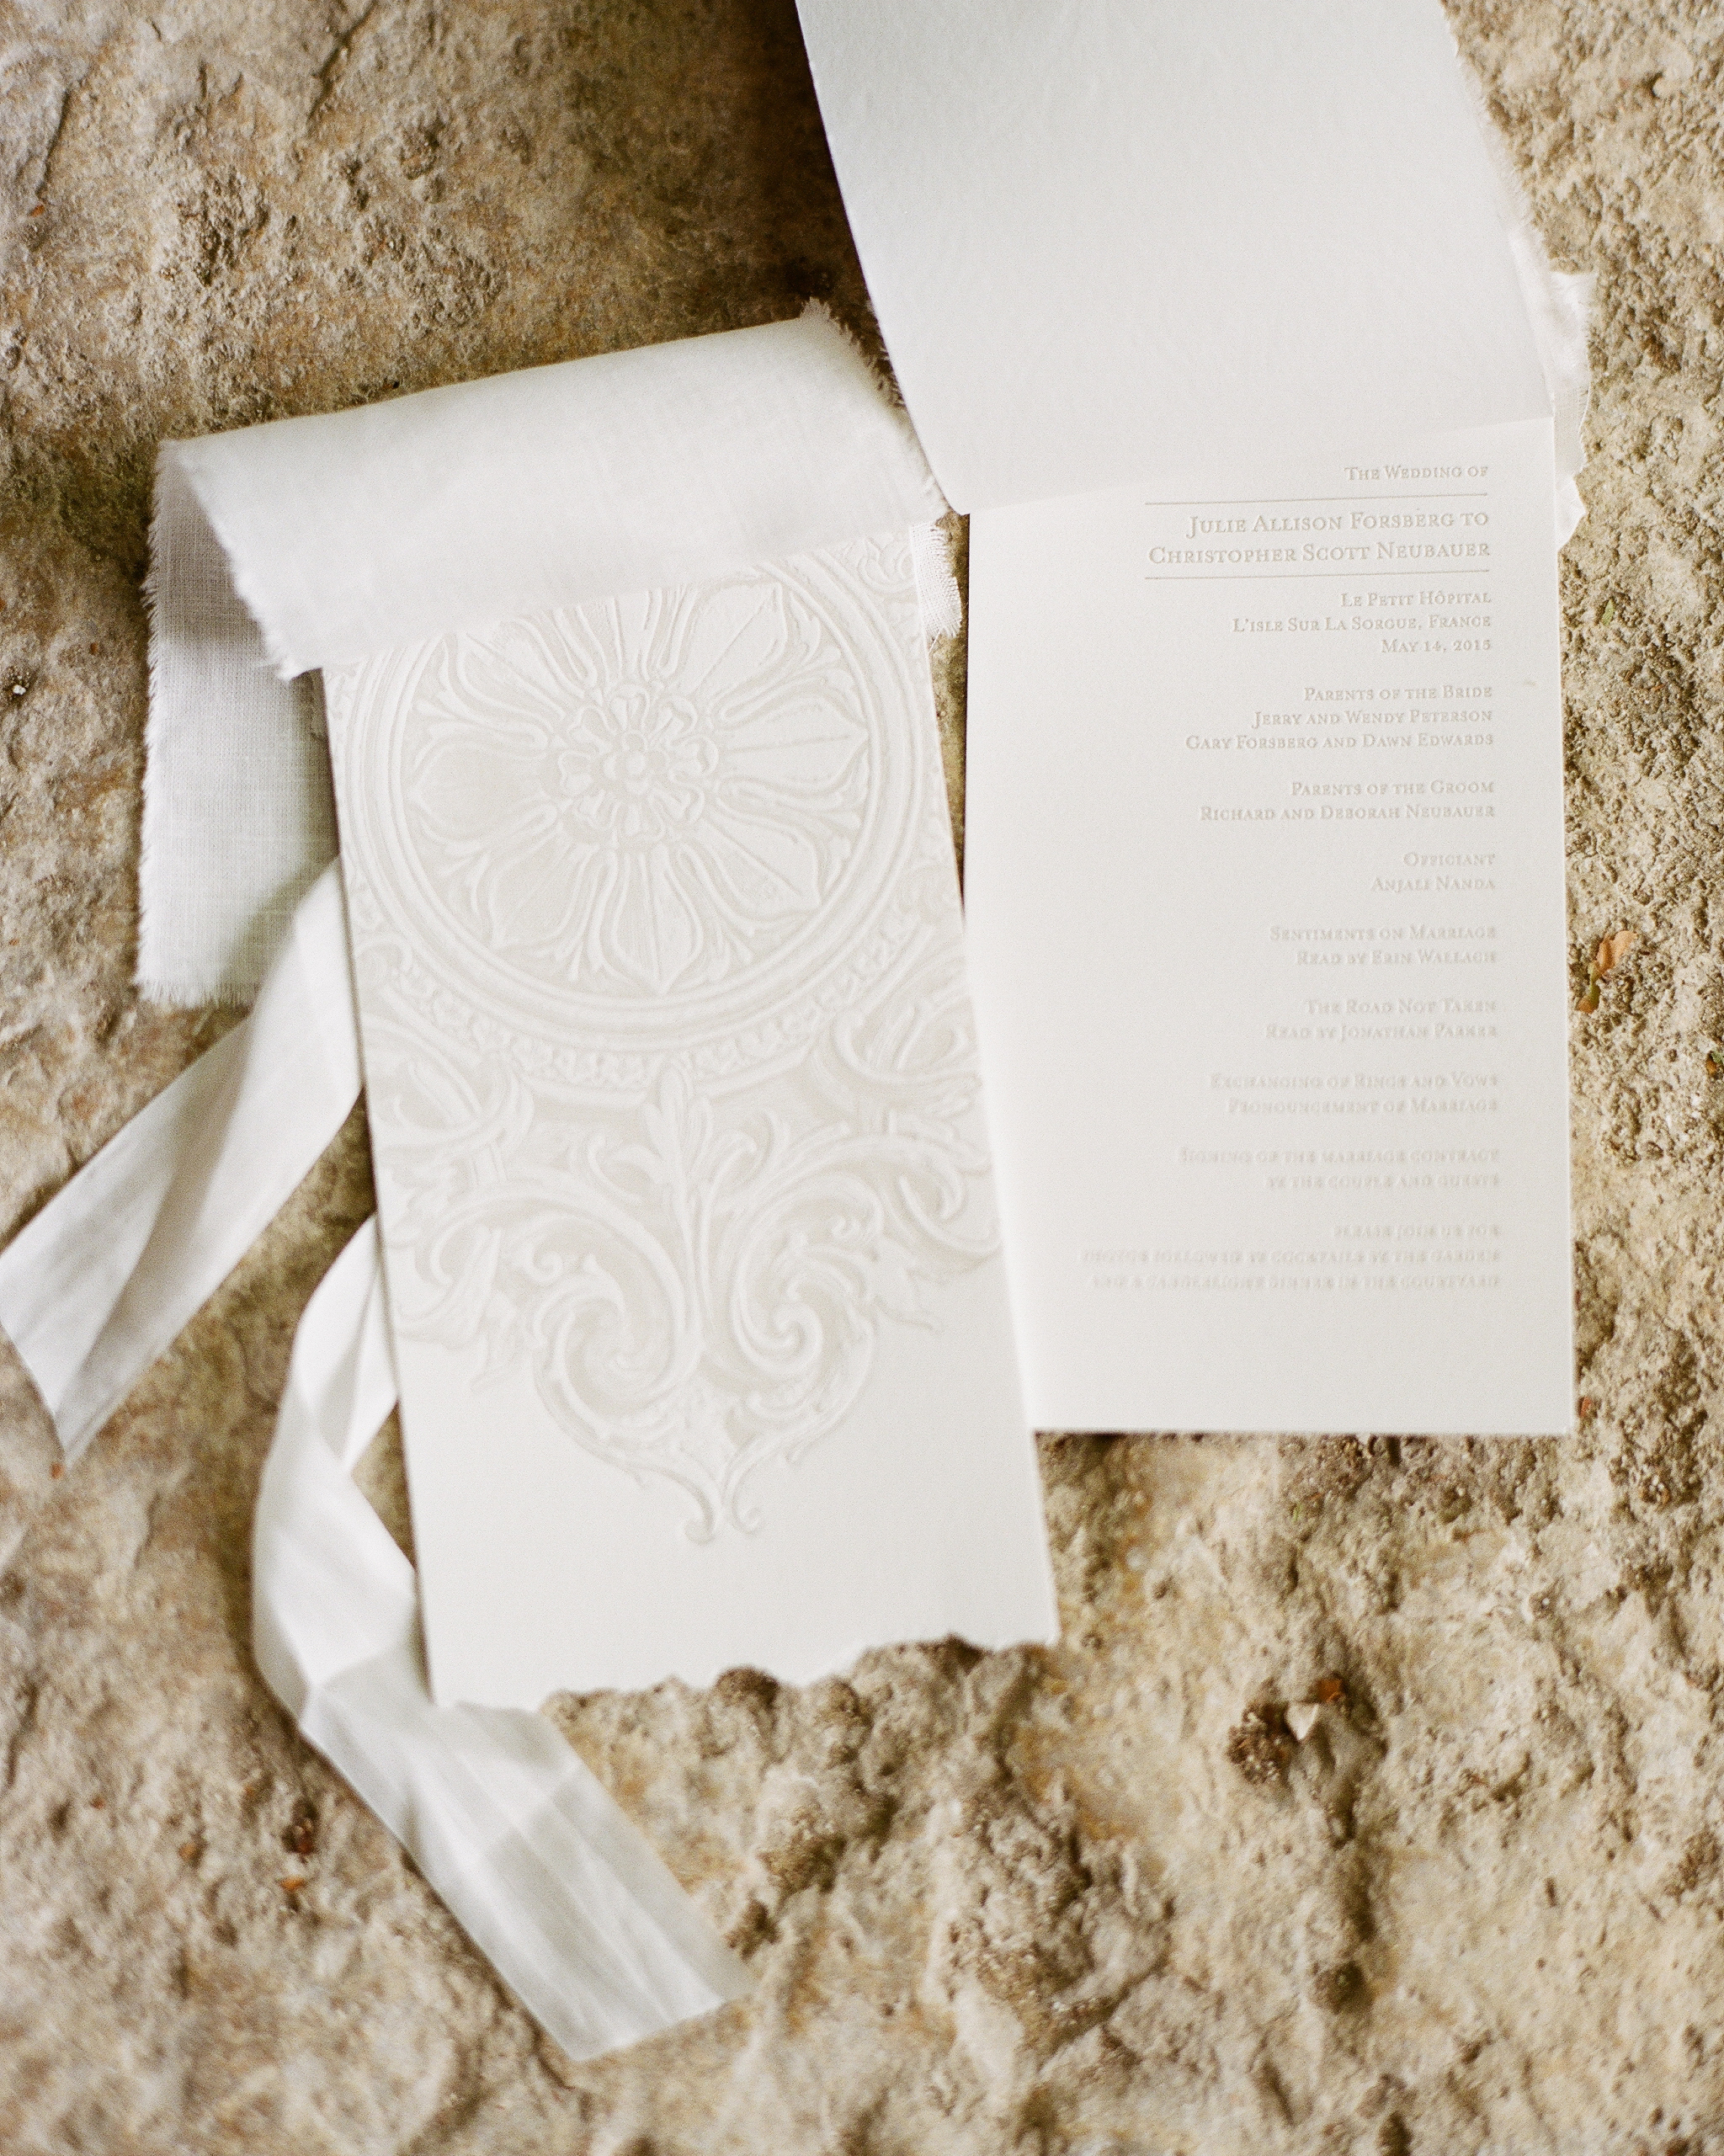 julie-chris-wedding-programs-1797-s12649-0216.jpg